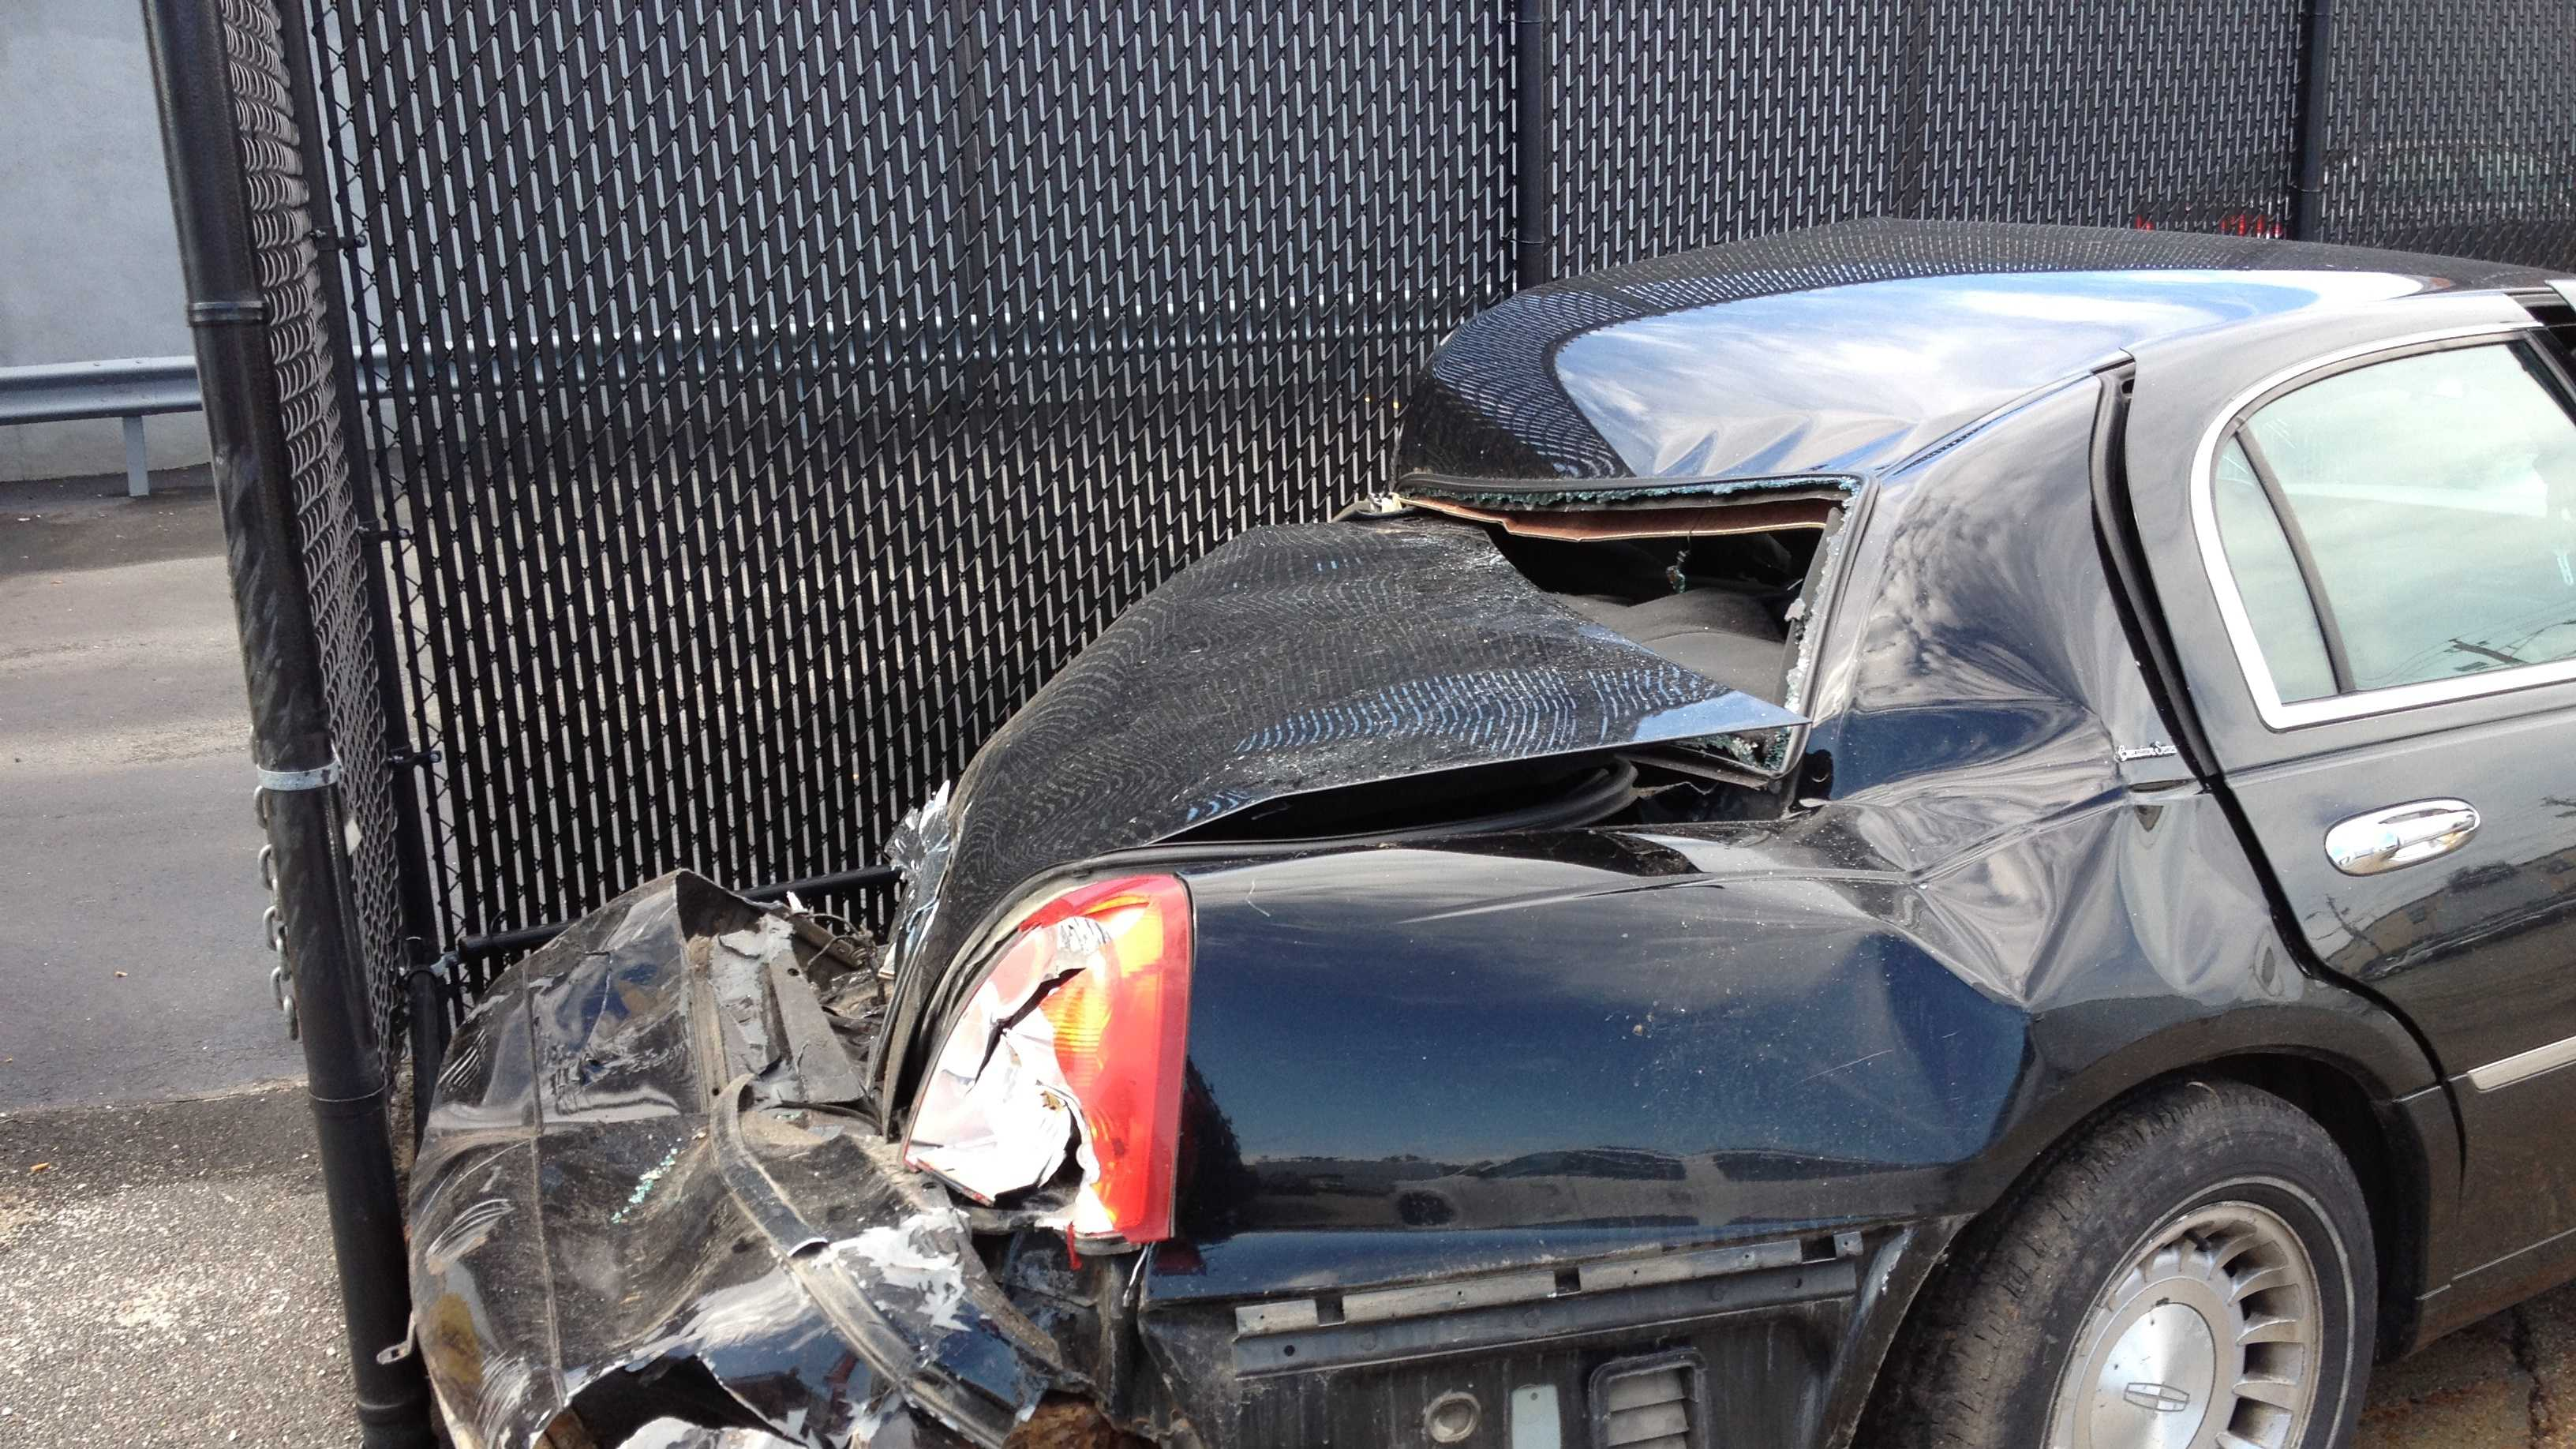 The rear end damage to a car struck by a train in West Medford.